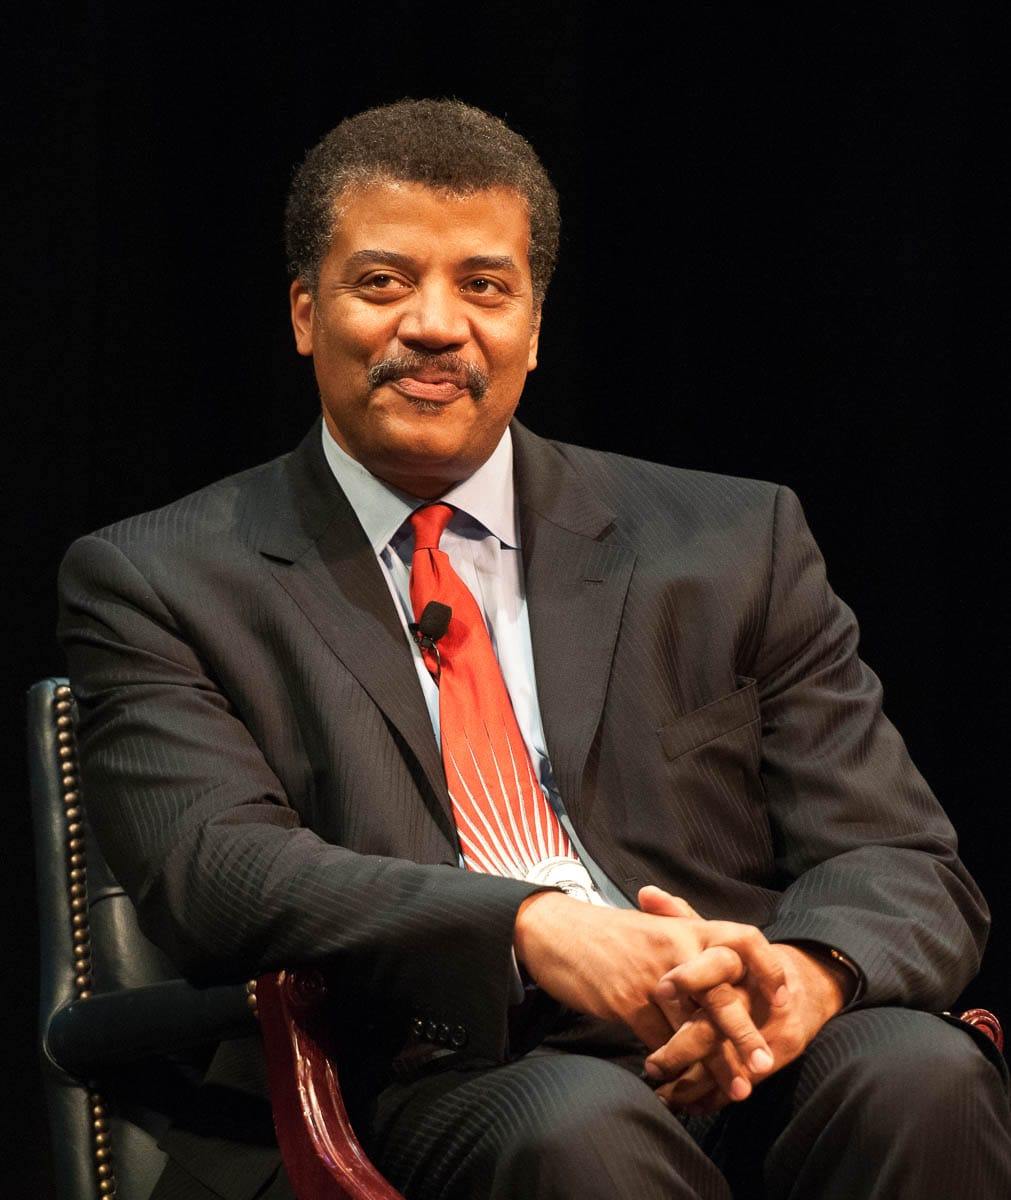 Neil Degrasse Tyson, Lion's Roar, Buddhism, Cosmology, Astrophysics, Interdependence, Impermanence, Rationality